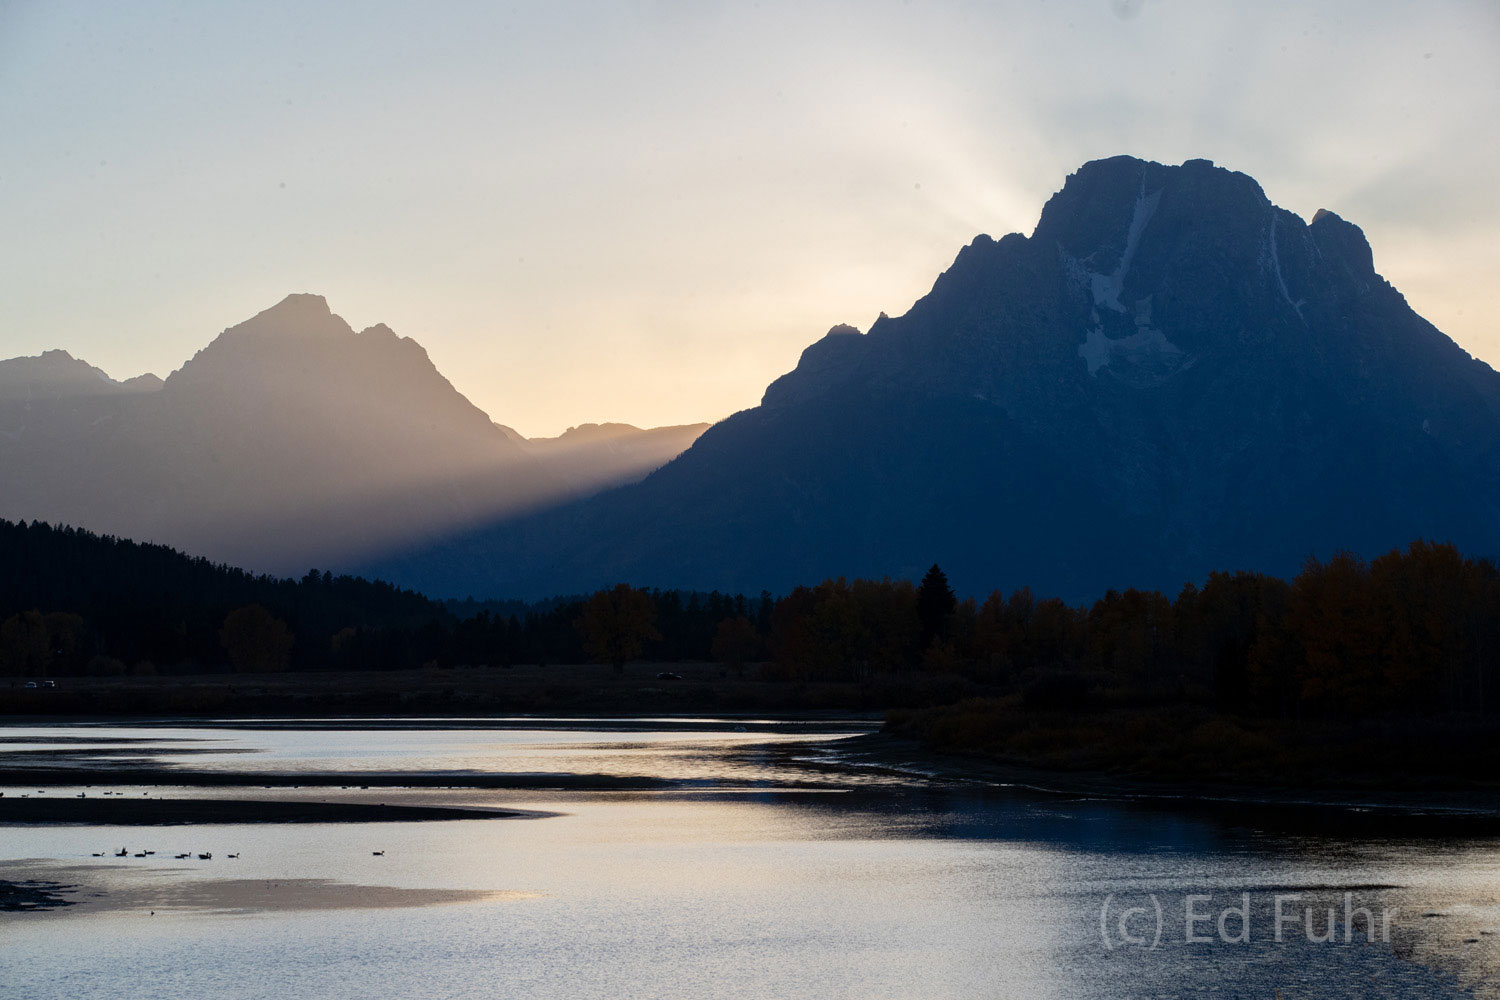 Shadows and light on Oxbow Bend, with Mount Moran looming above.